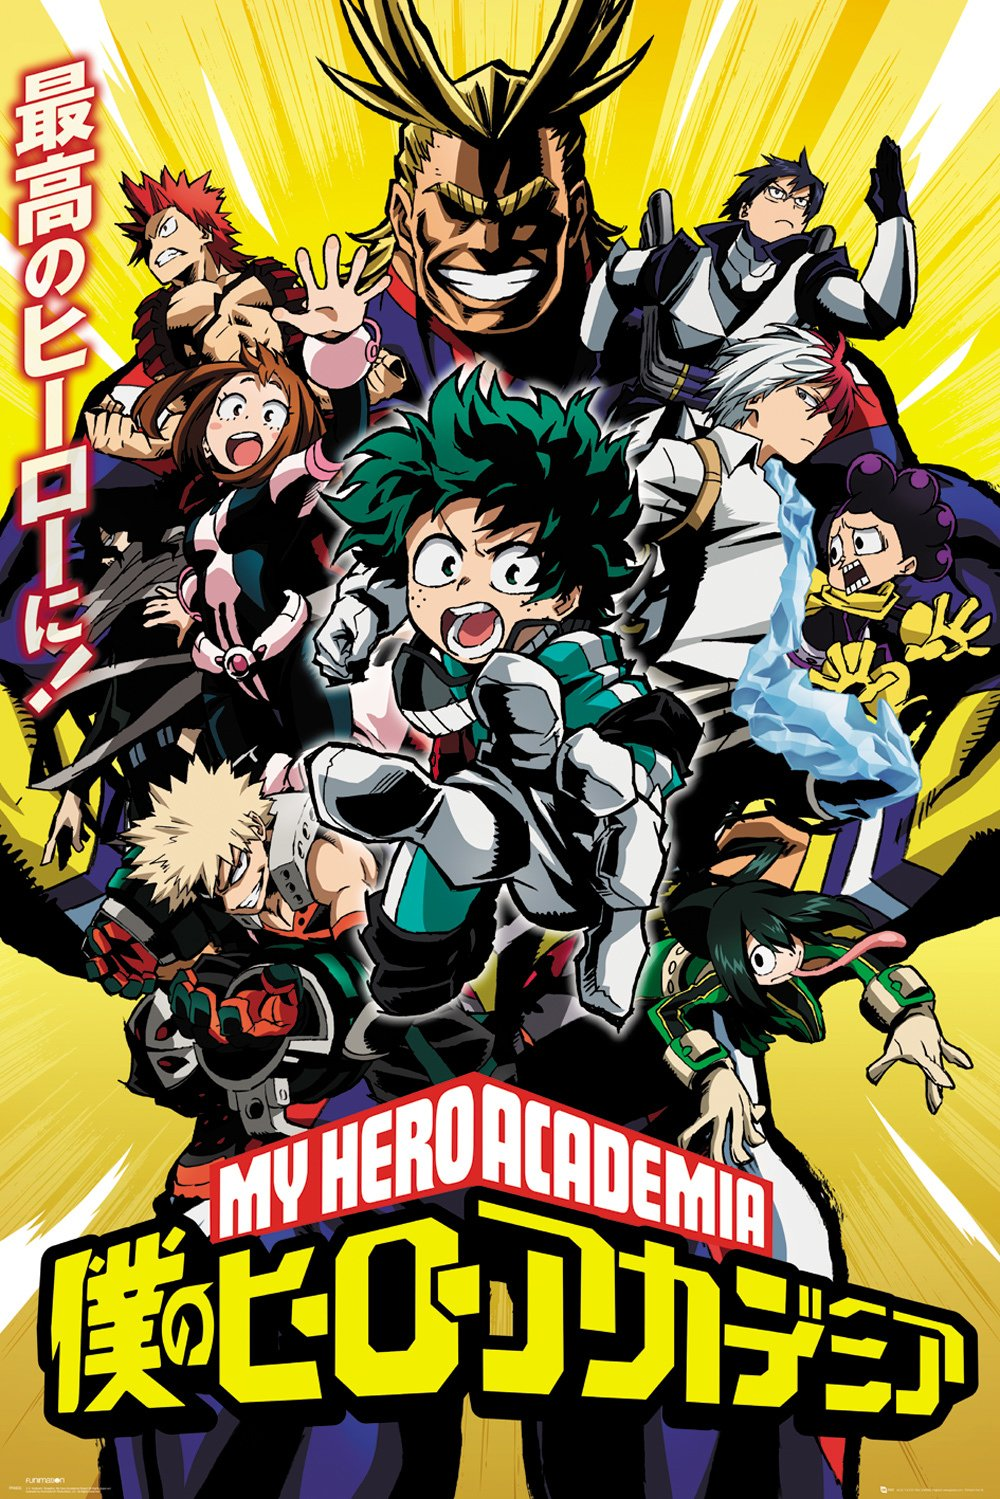 Tagged with my hero academia anime